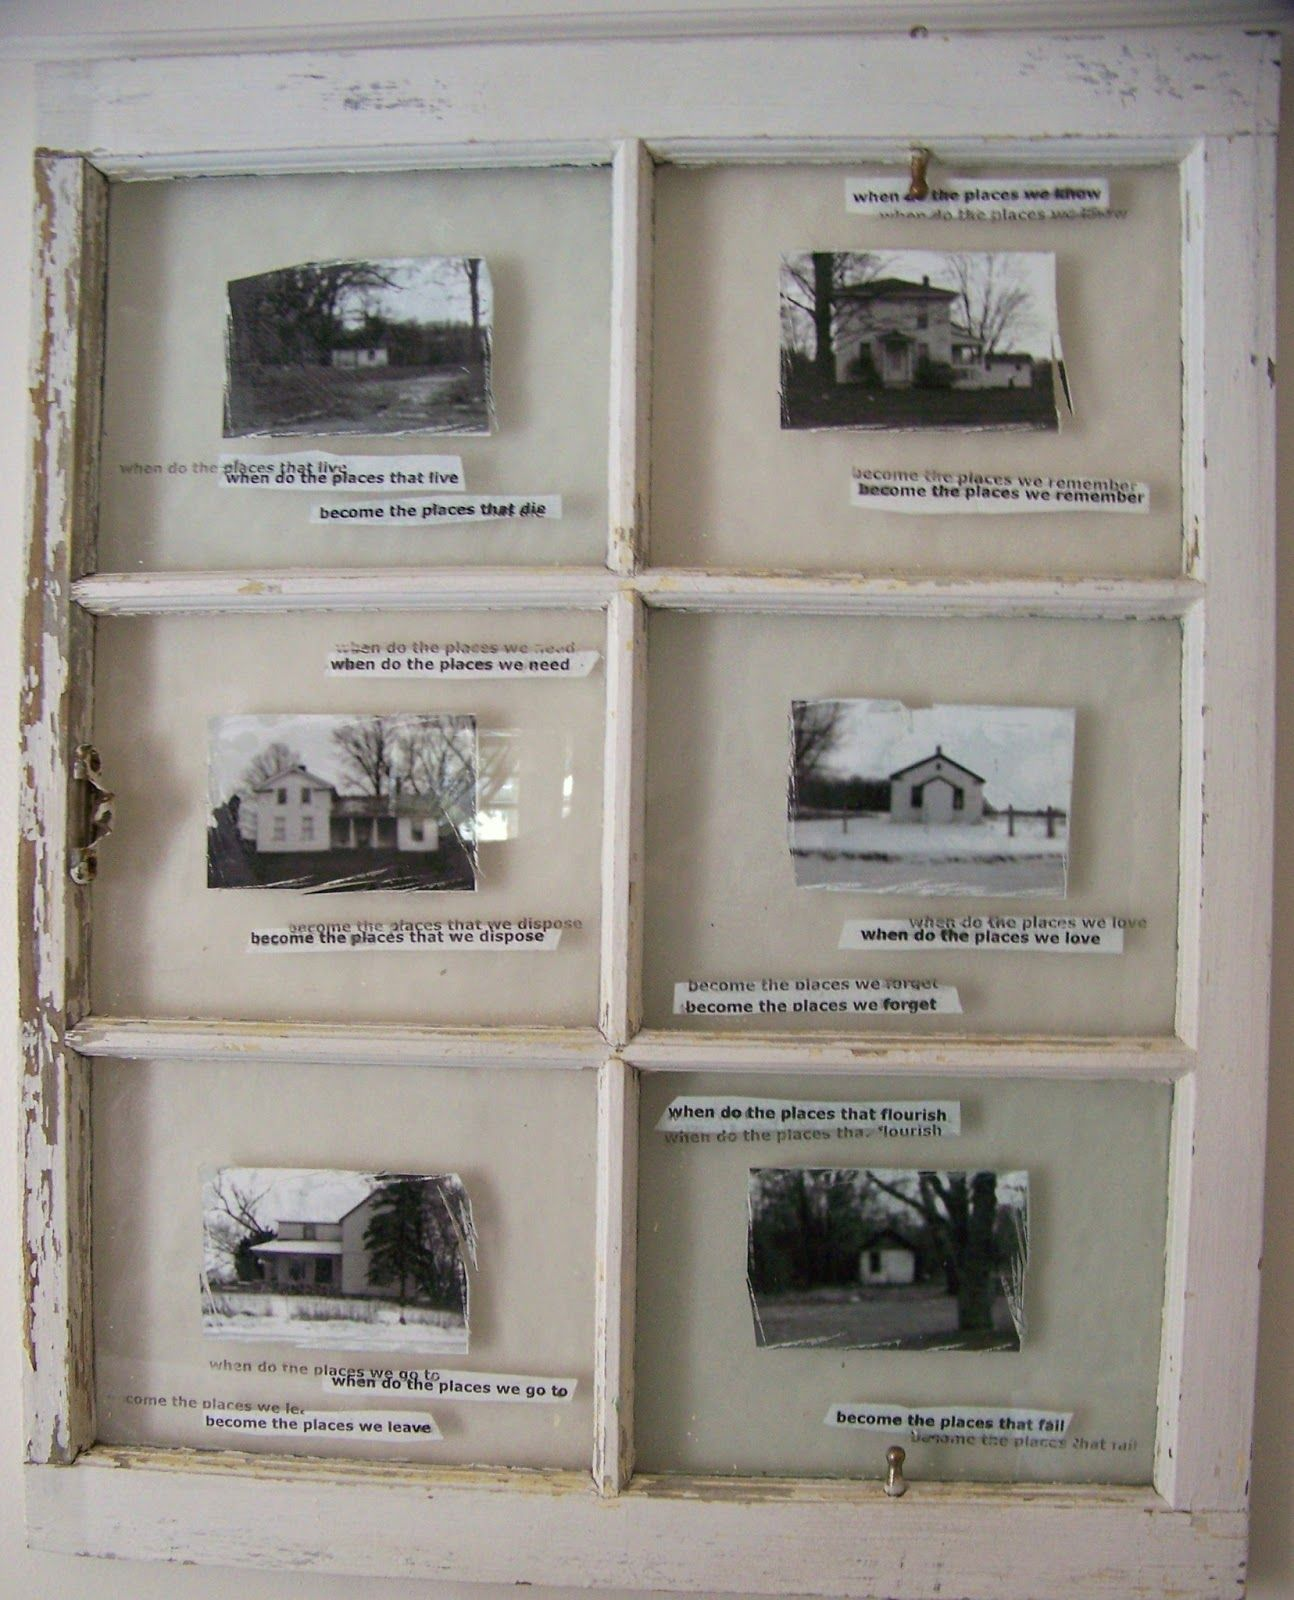 Antique Window Frame Old House Photos And Haunting Words